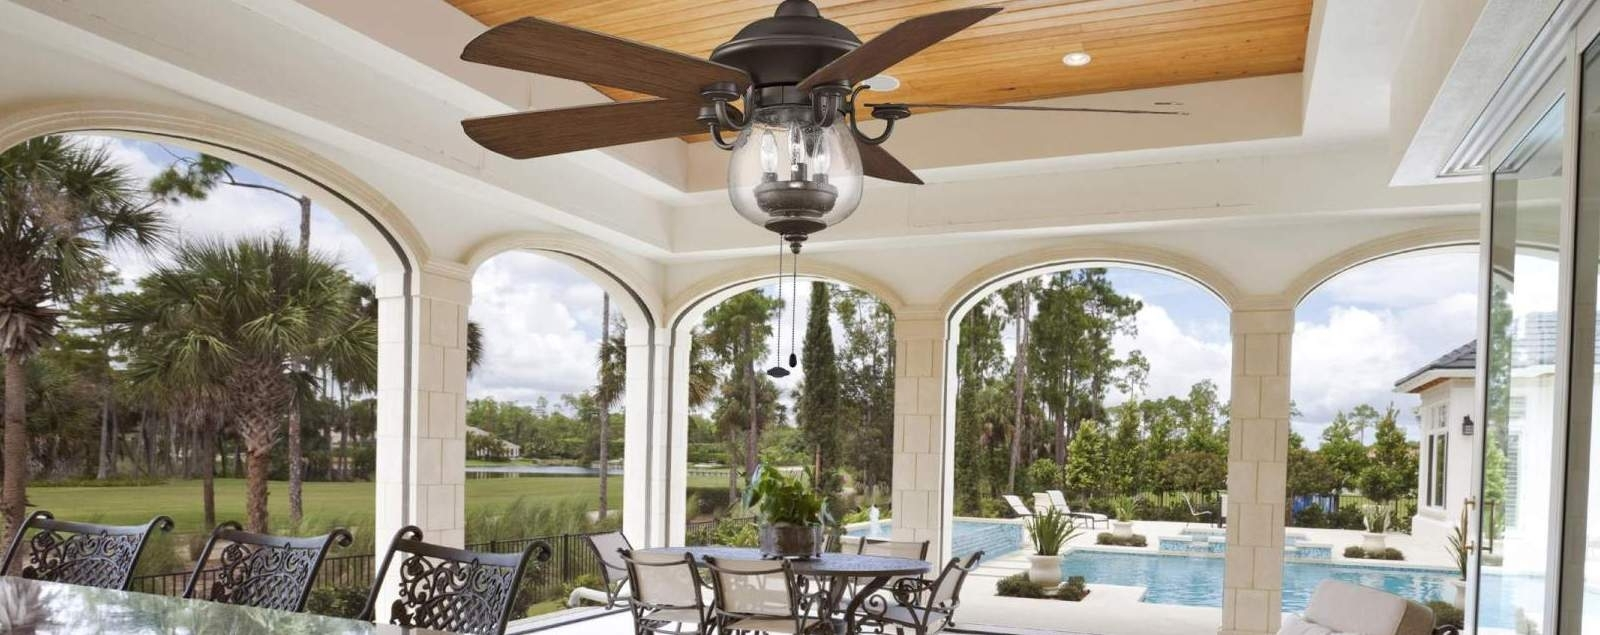 Wet Rated Emerson Outdoor Ceiling Fans Intended For Well Known Outdoor Ceiling Fans – Shop Wet, Dry, And Damp Rated Outdoor Fans (View 15 of 20)